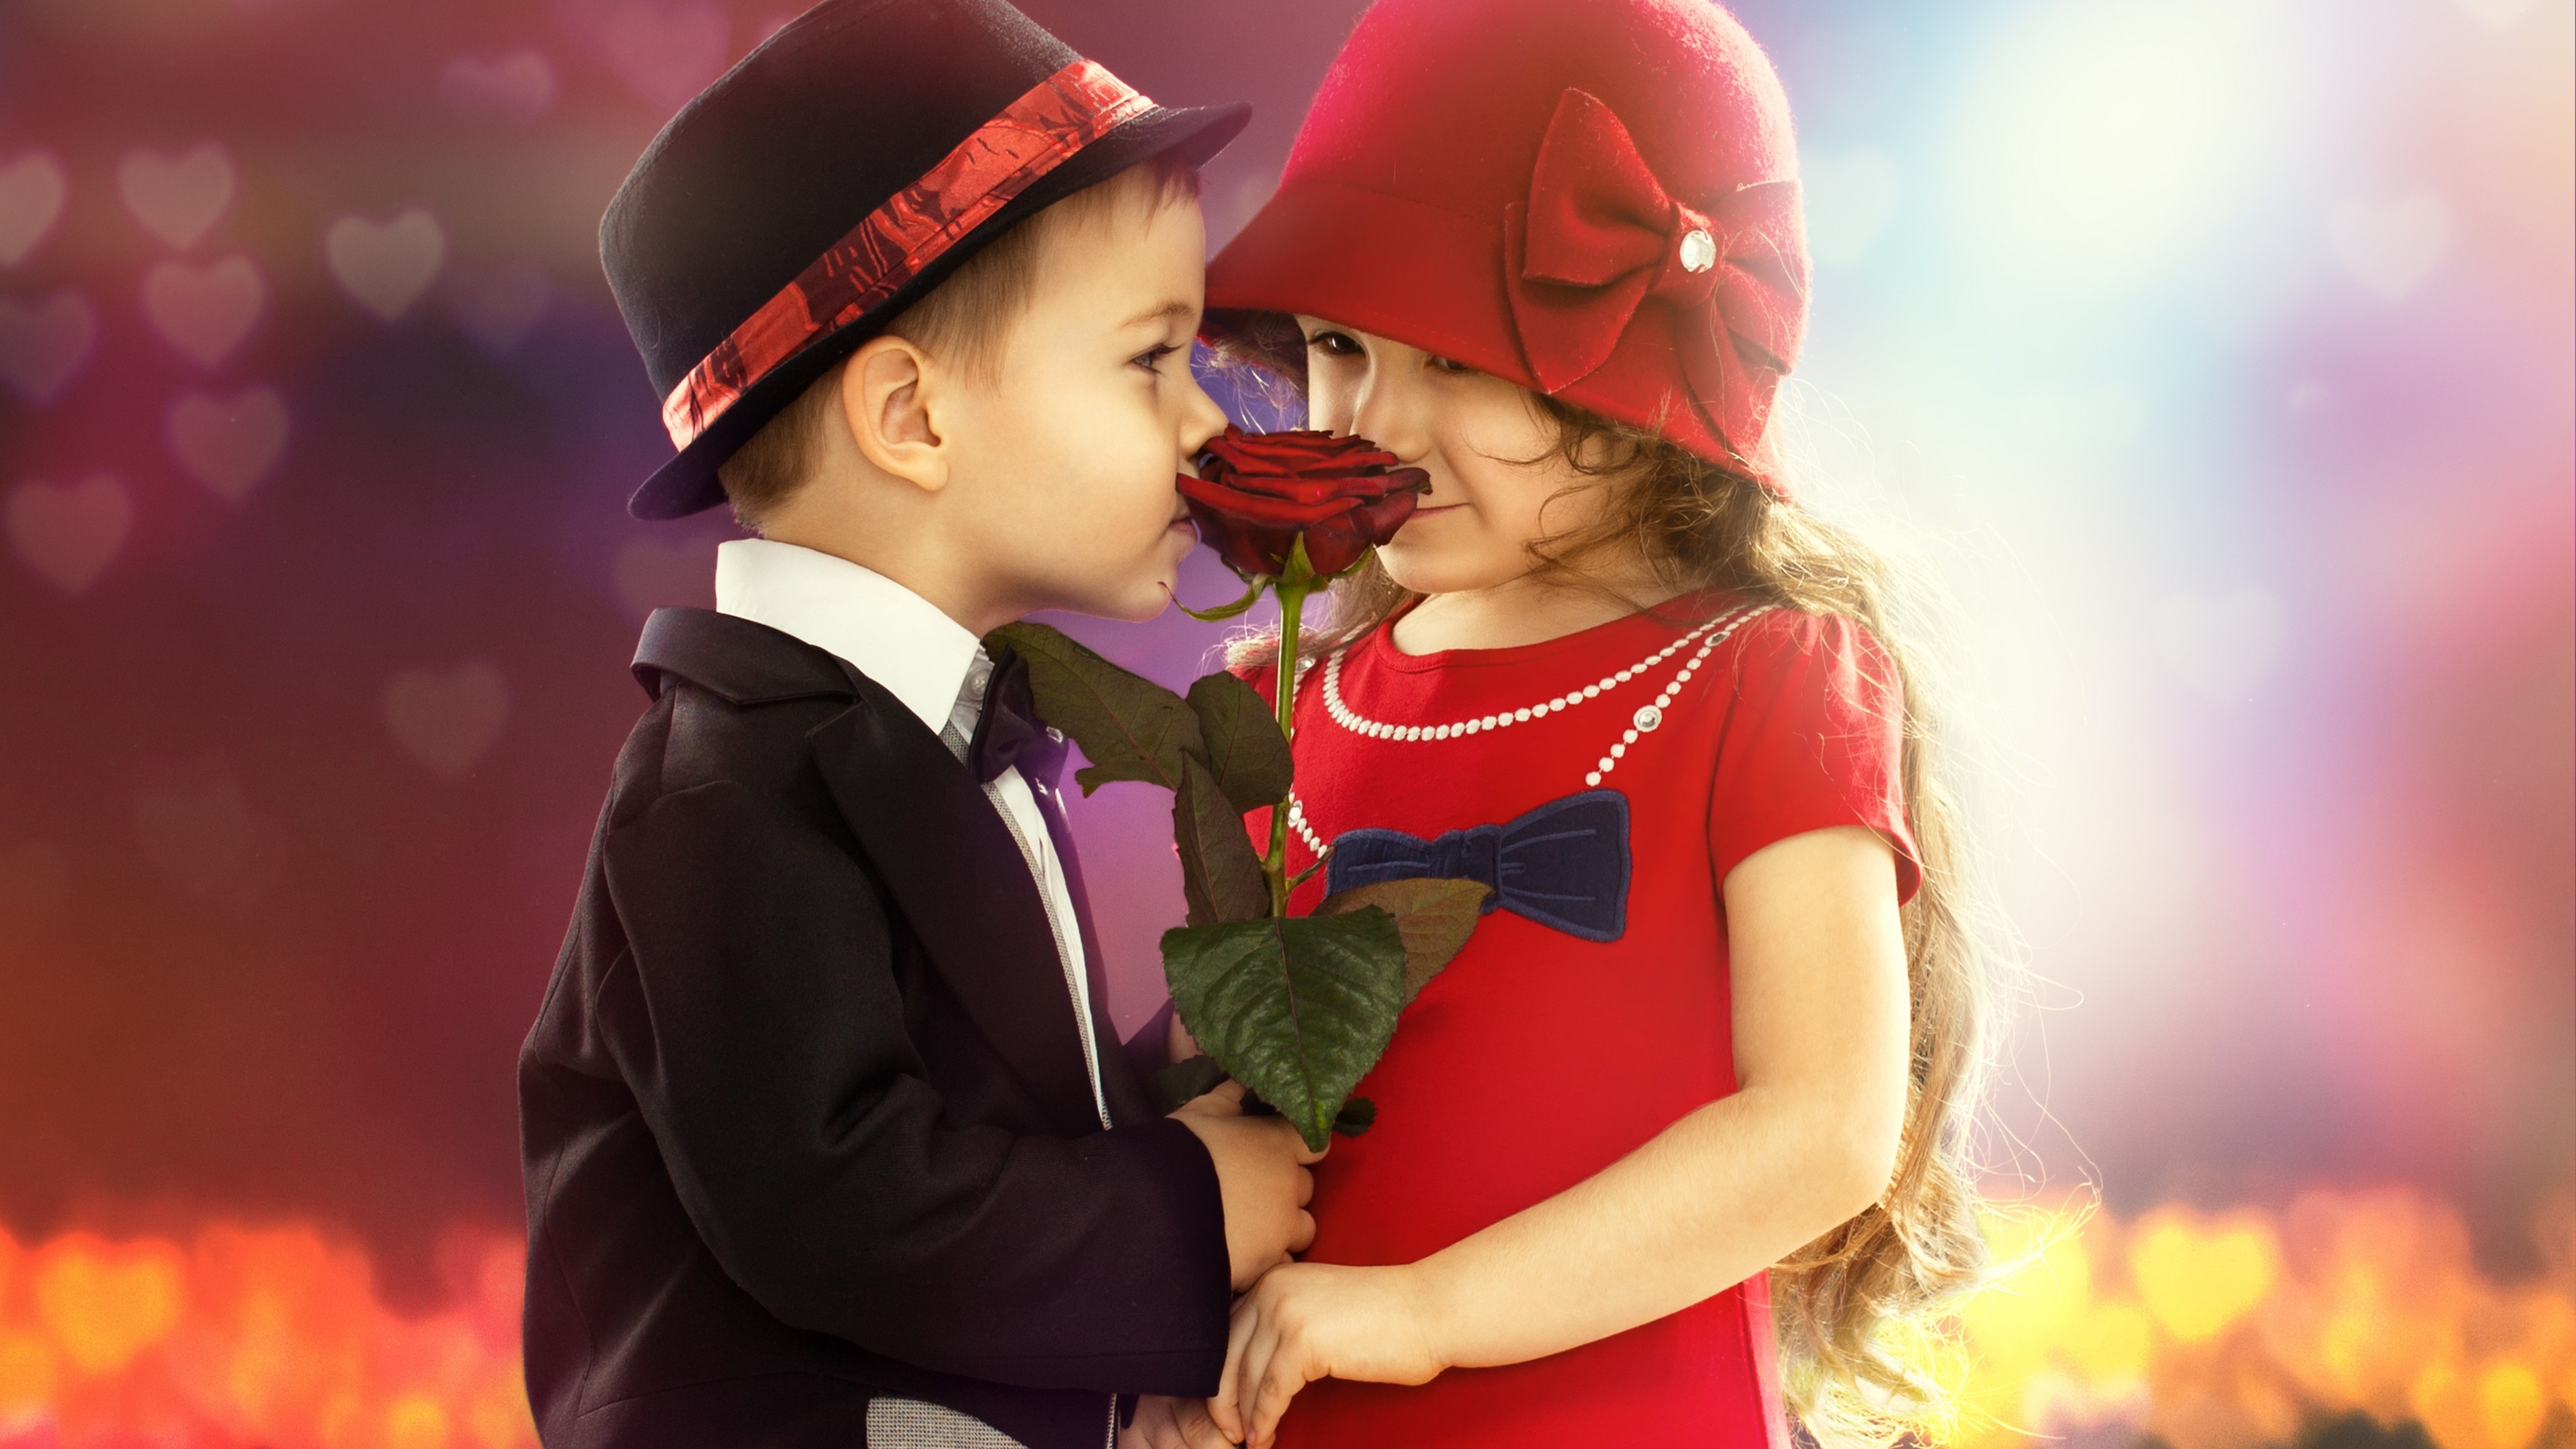 Cute boy and girl wallpaper 3840x2160